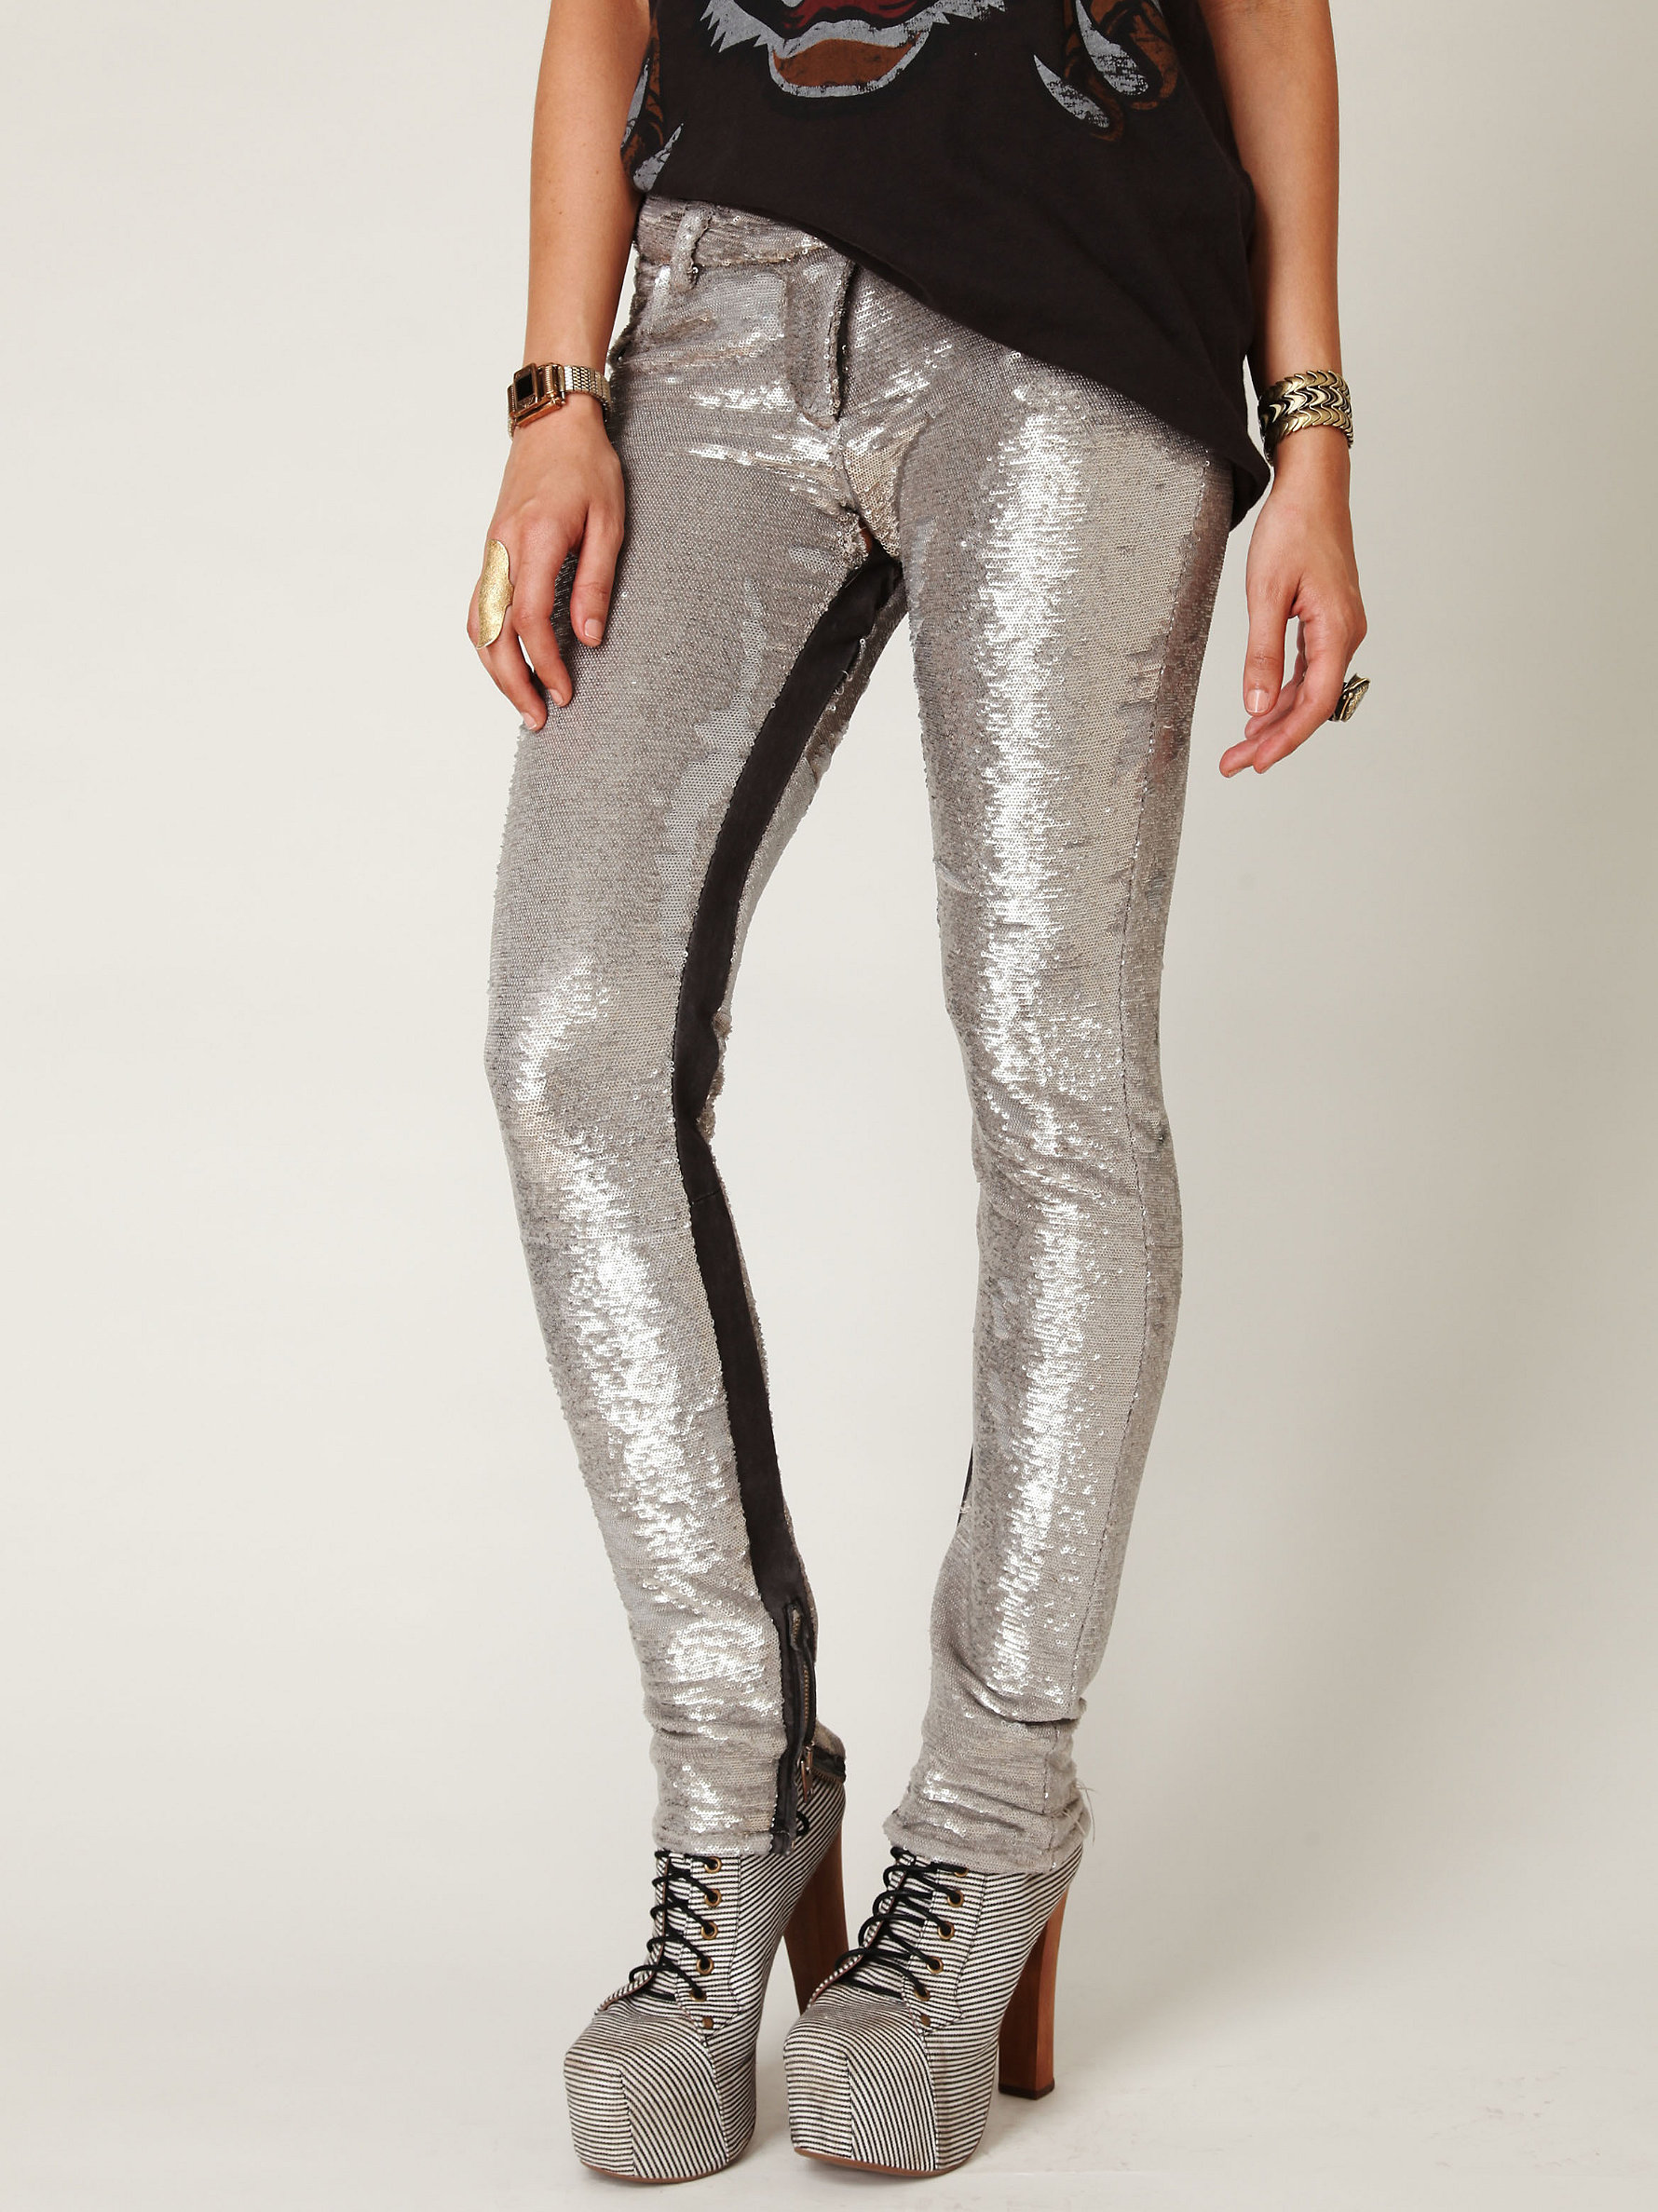 IRO Distressed Sequin Pants at Free People Clothing Boutique